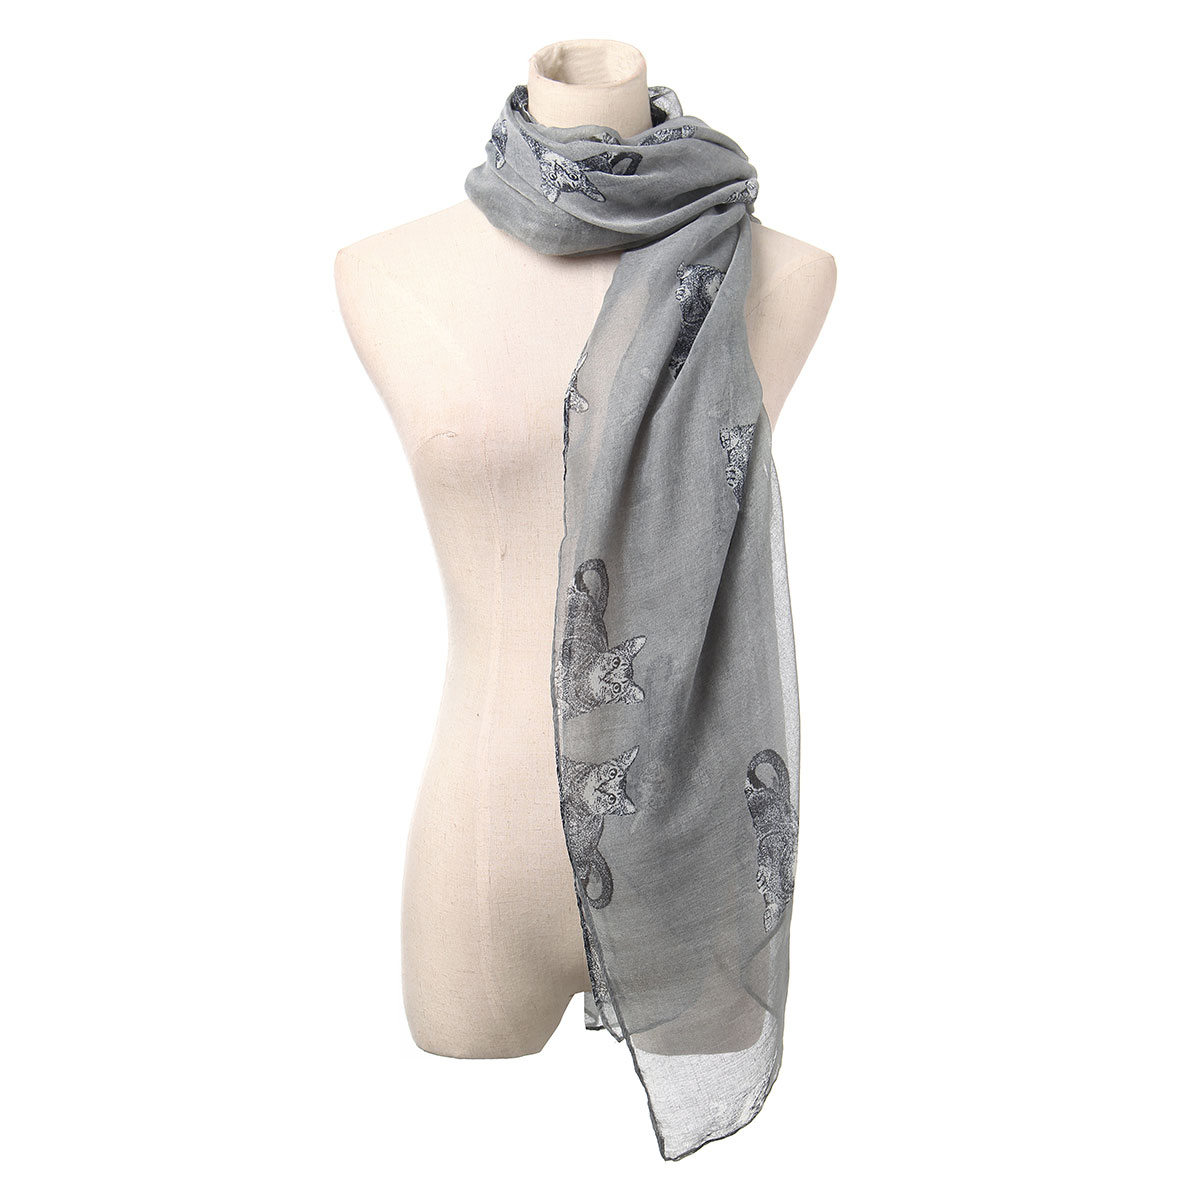 Women Ladies Cats Animal Print Scarf Neck Warm Shawl Wrap Stole